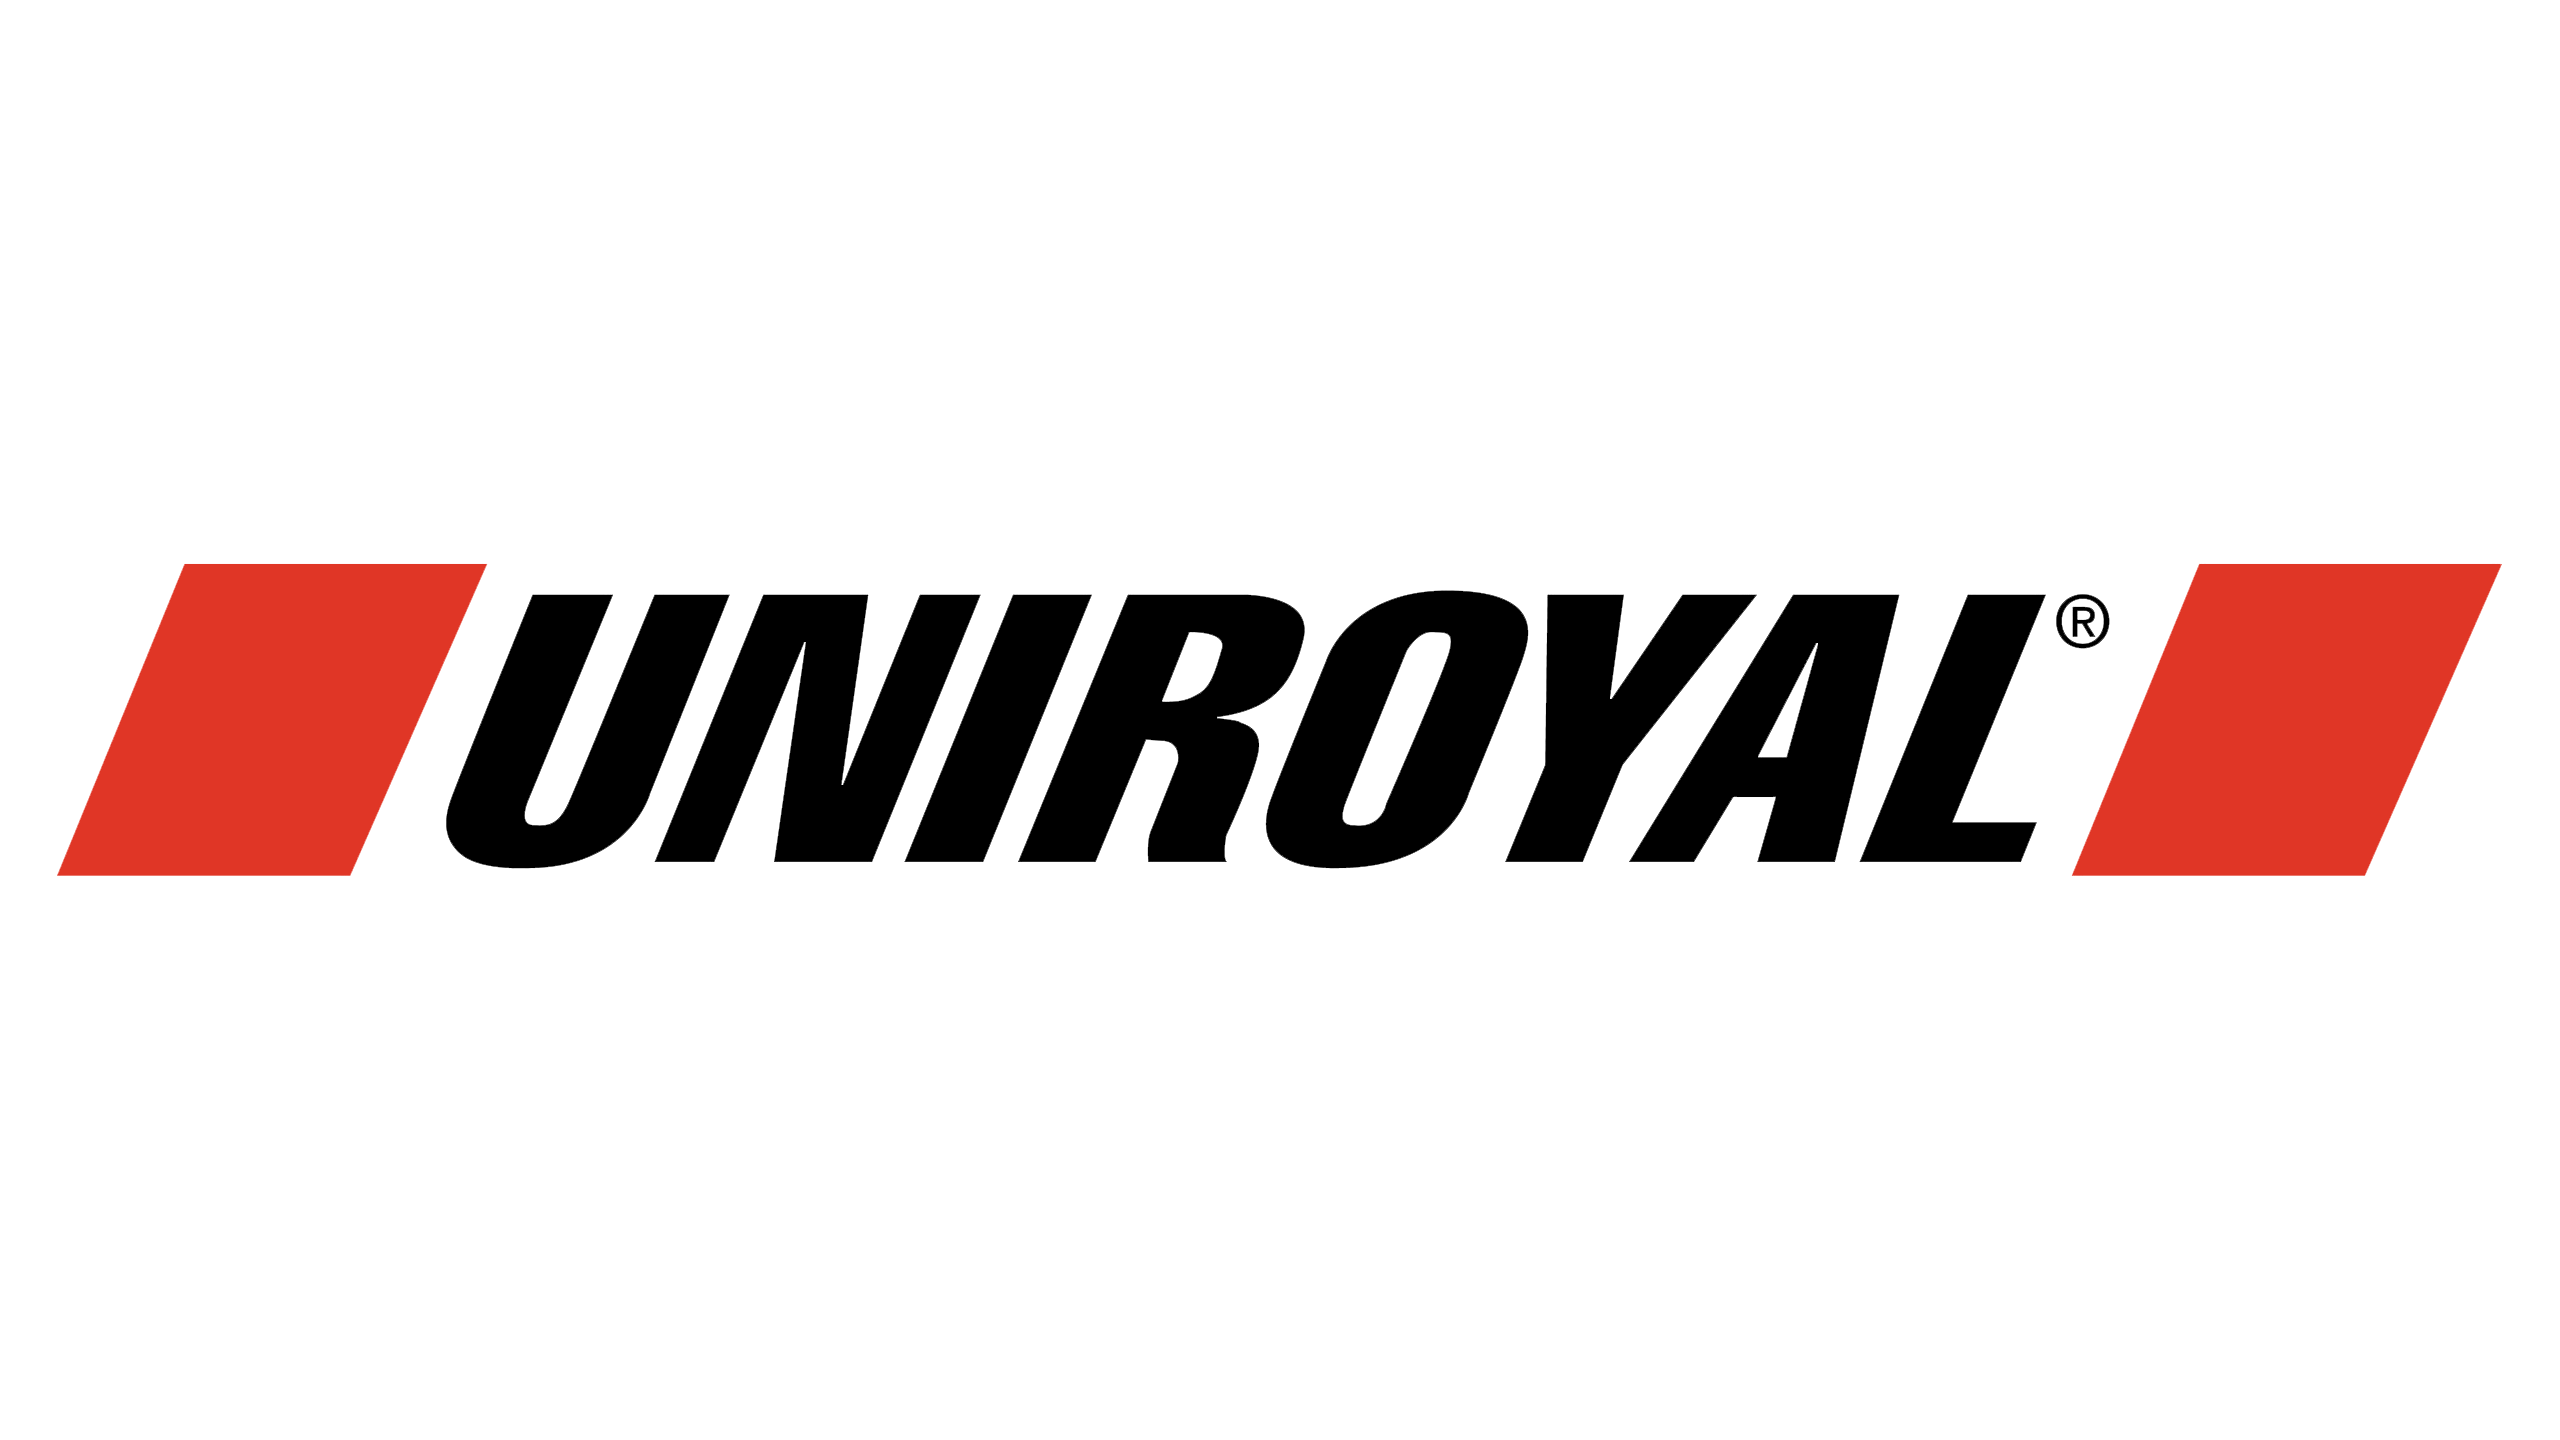 Uniroyal logo 2560x1440 - Home 2